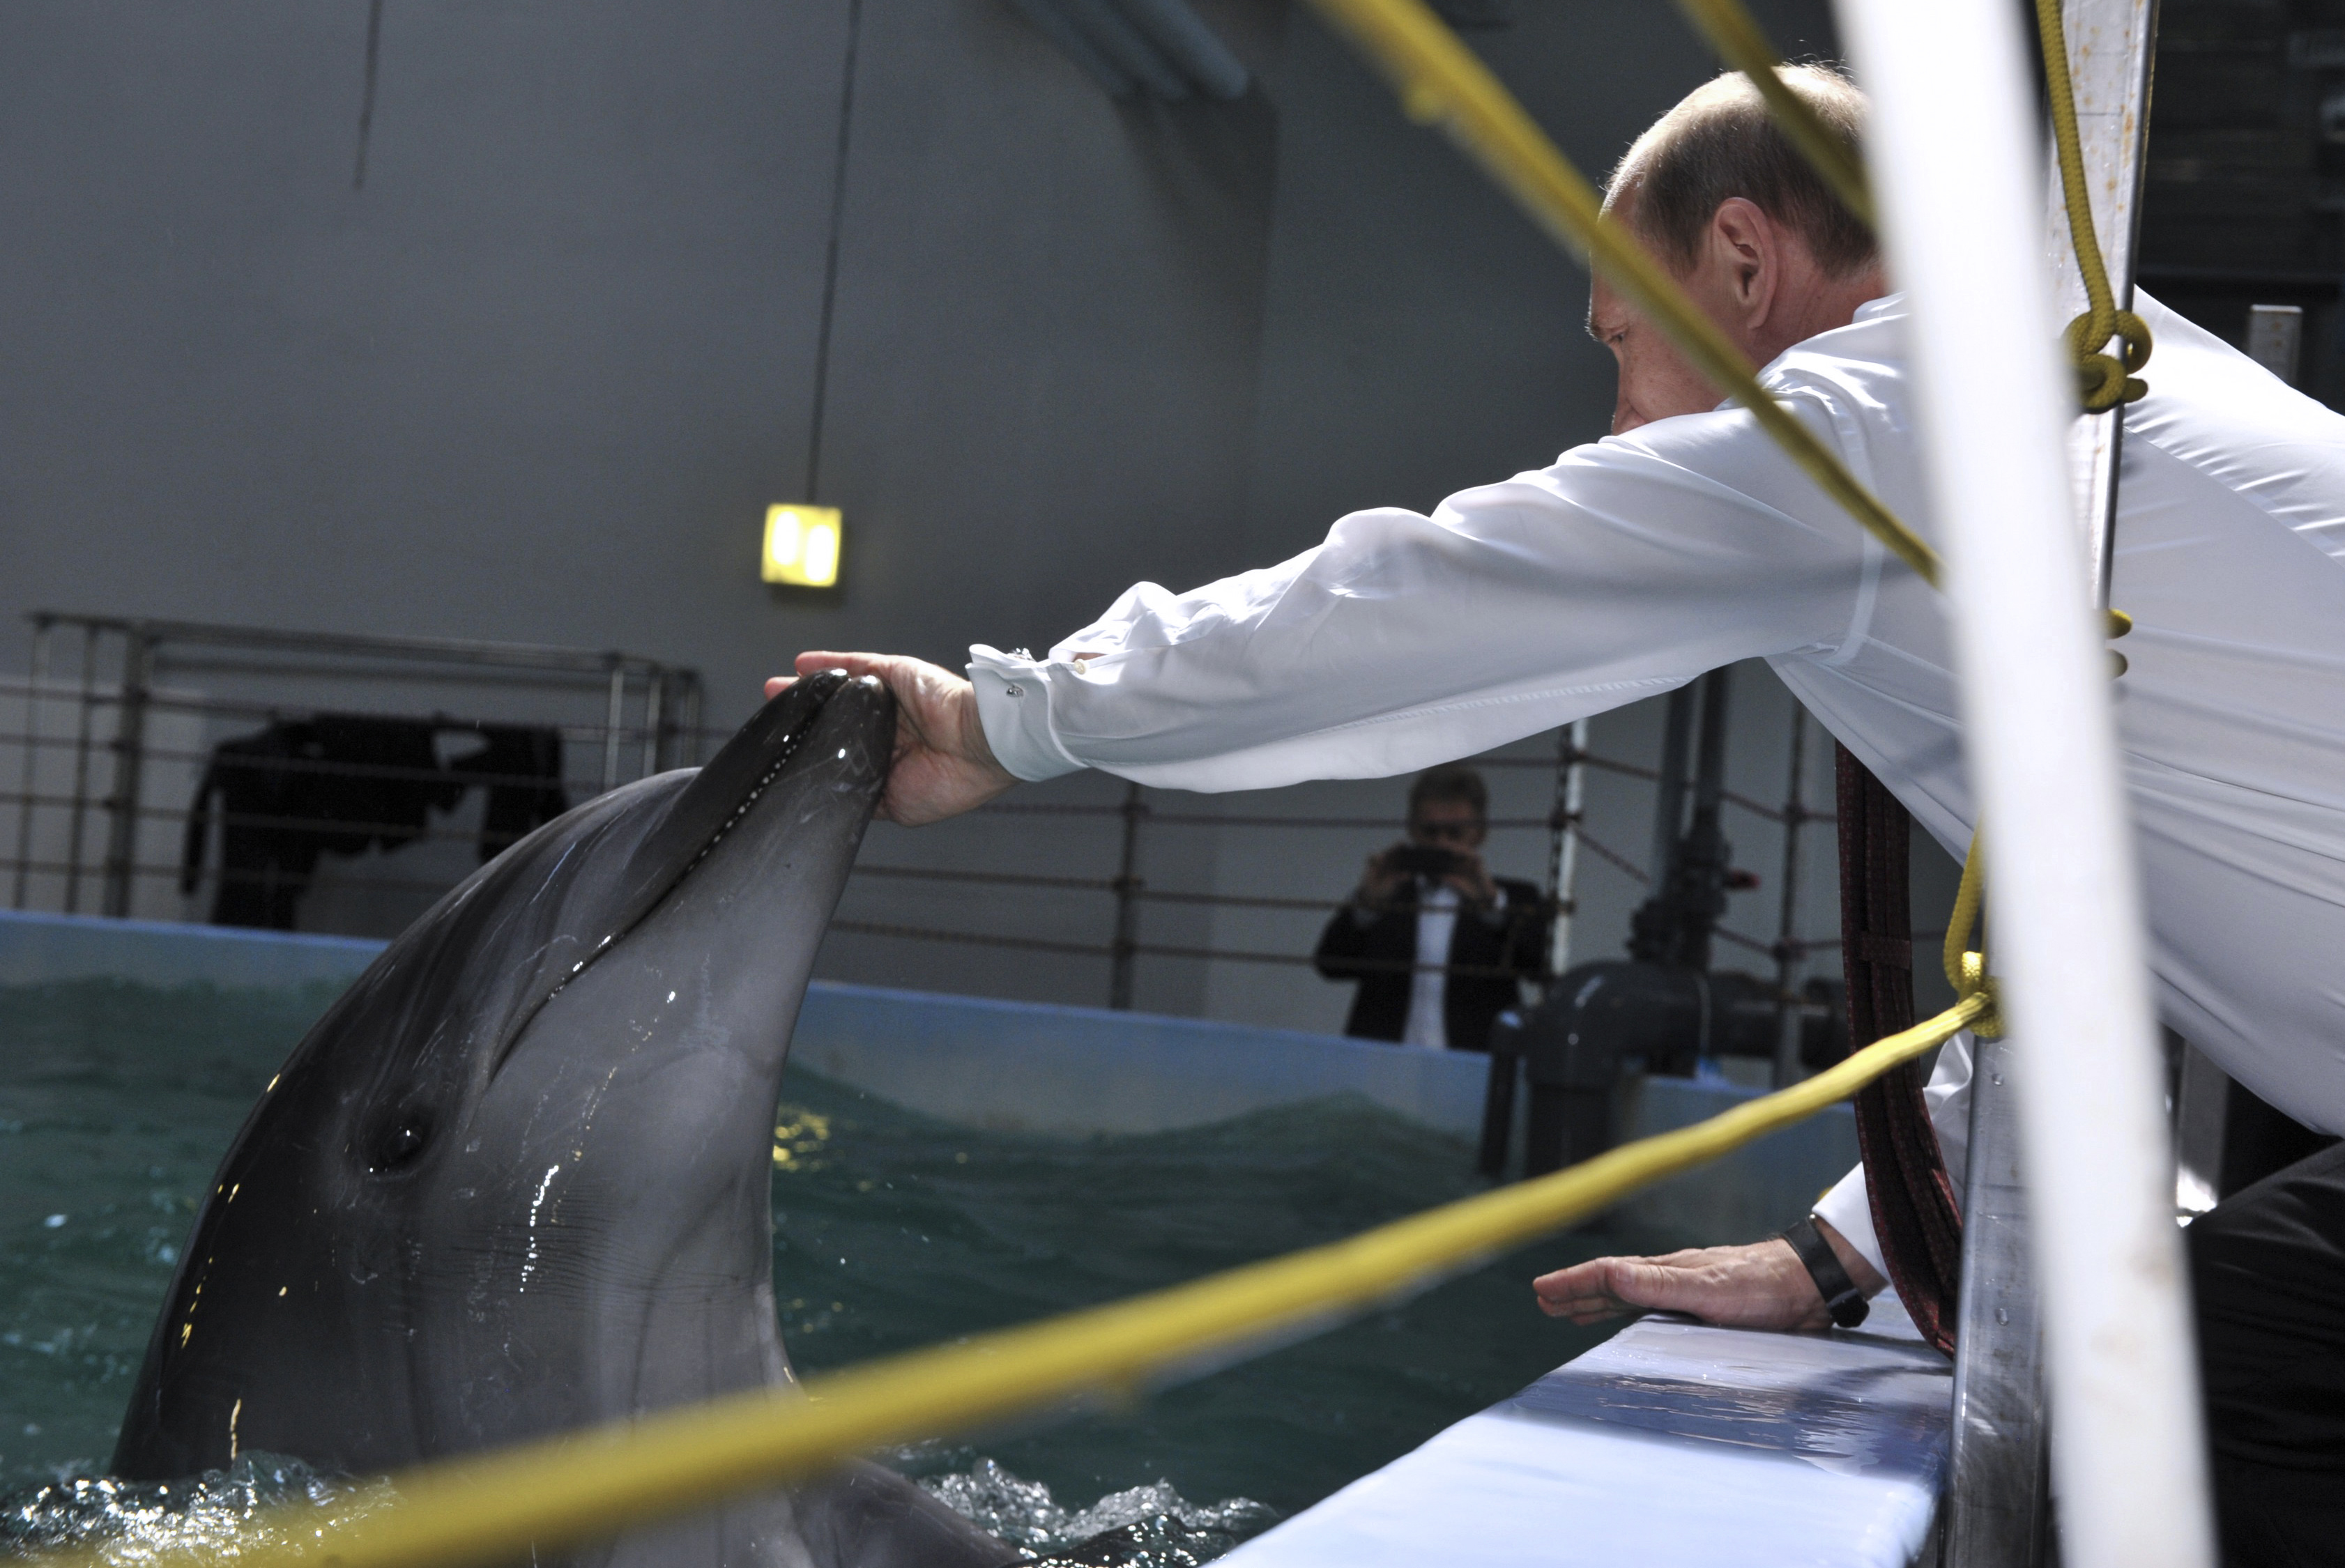 Russia's President Putin leans to touch a dolphin as he visits the Primorsky Aquarium, which is under construction, on the Russky Island in Vladivostok